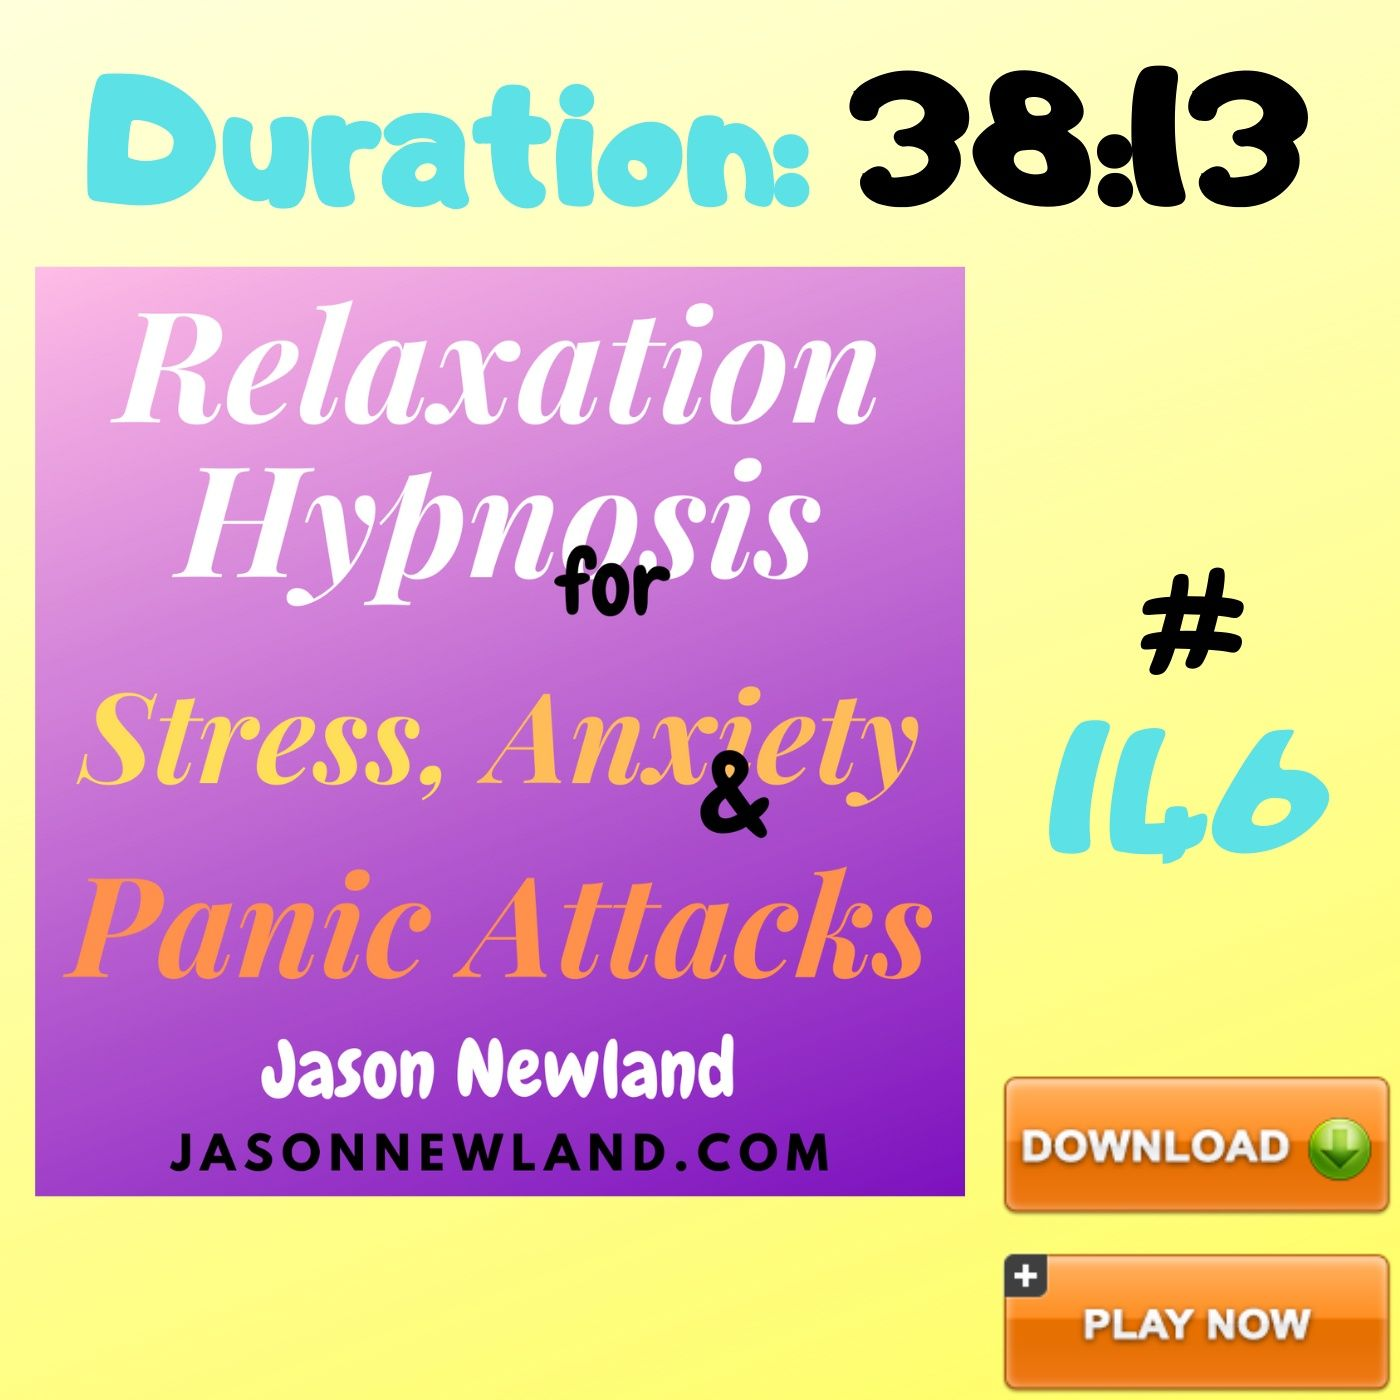 "#146 Relaxation Hypnosis for Stress, Anxiety & Panic Attacks - ""REPLACE STRESS WITH POSITIVITY"" (Jason Newland) (3rd June 2020)"